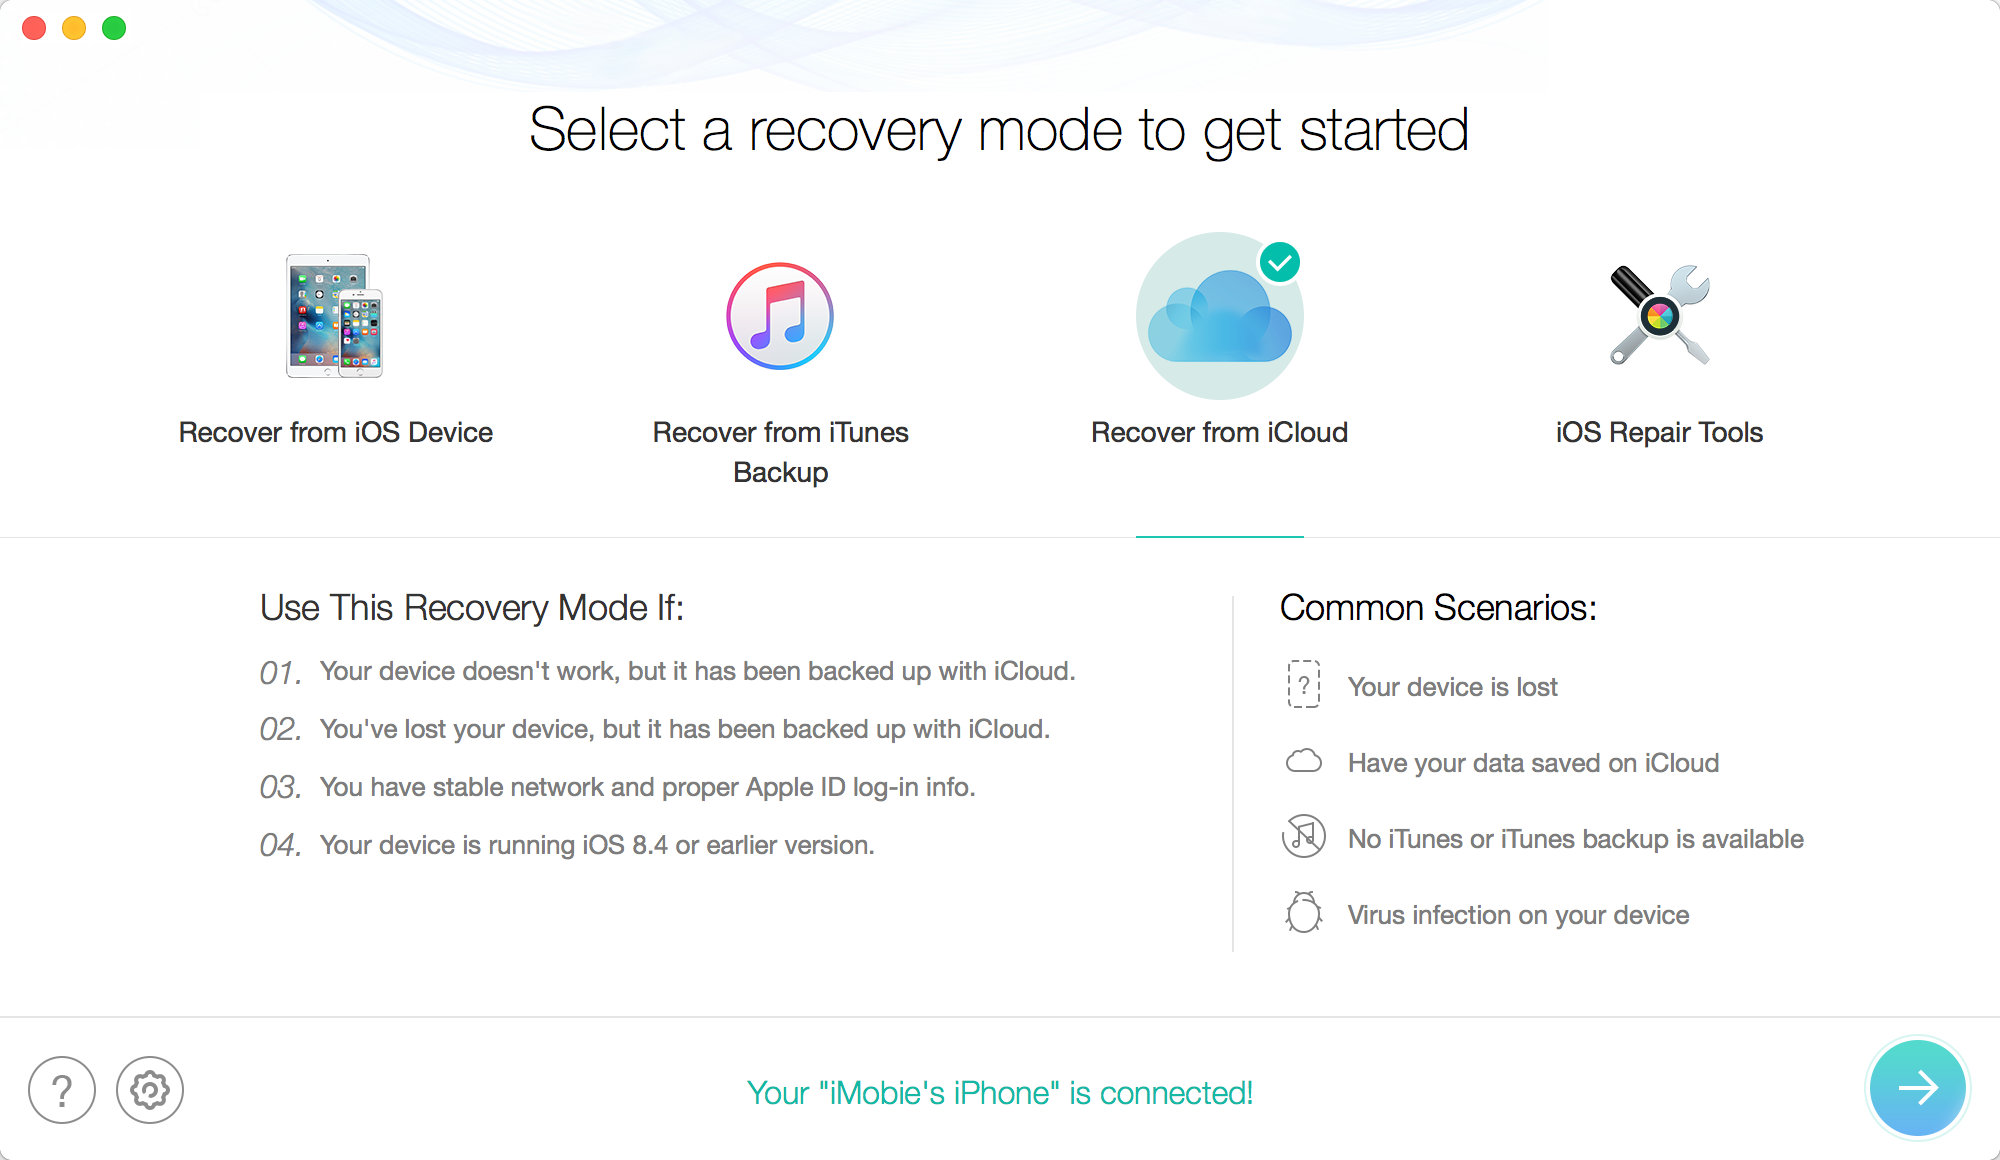 Select Recover From iCloud